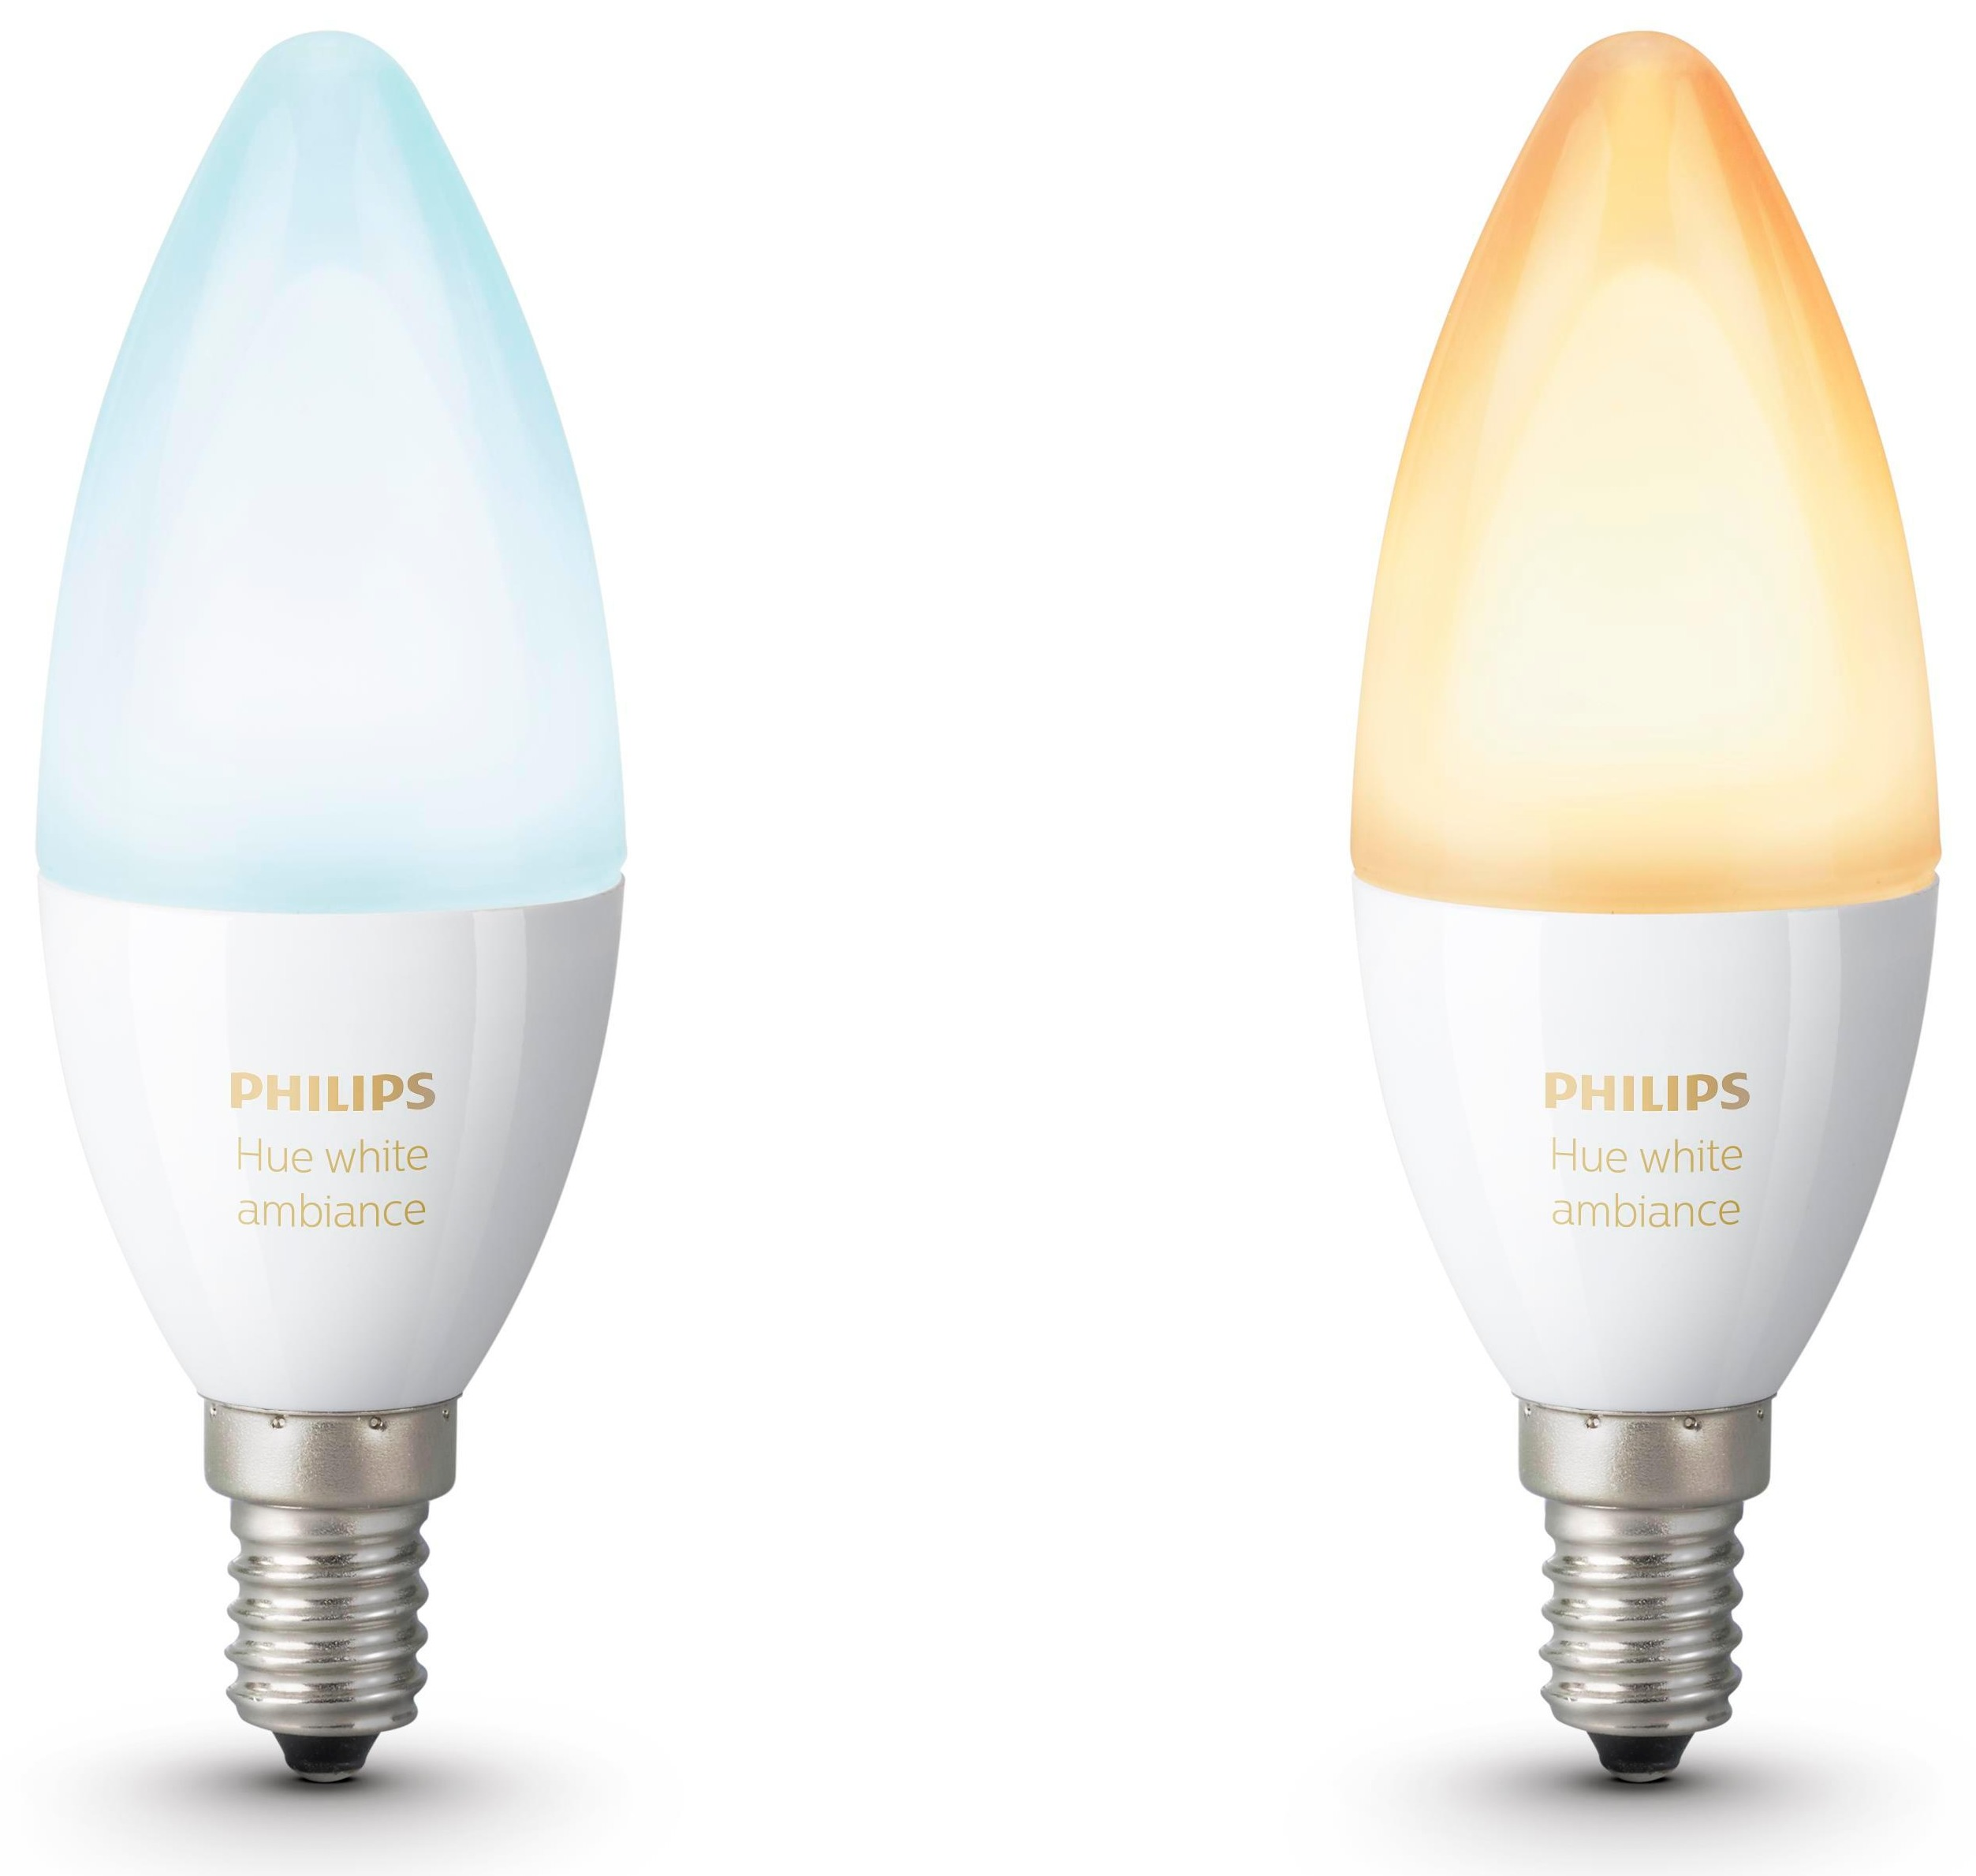 Philips Hue White Ambiance 6W E14 duopack